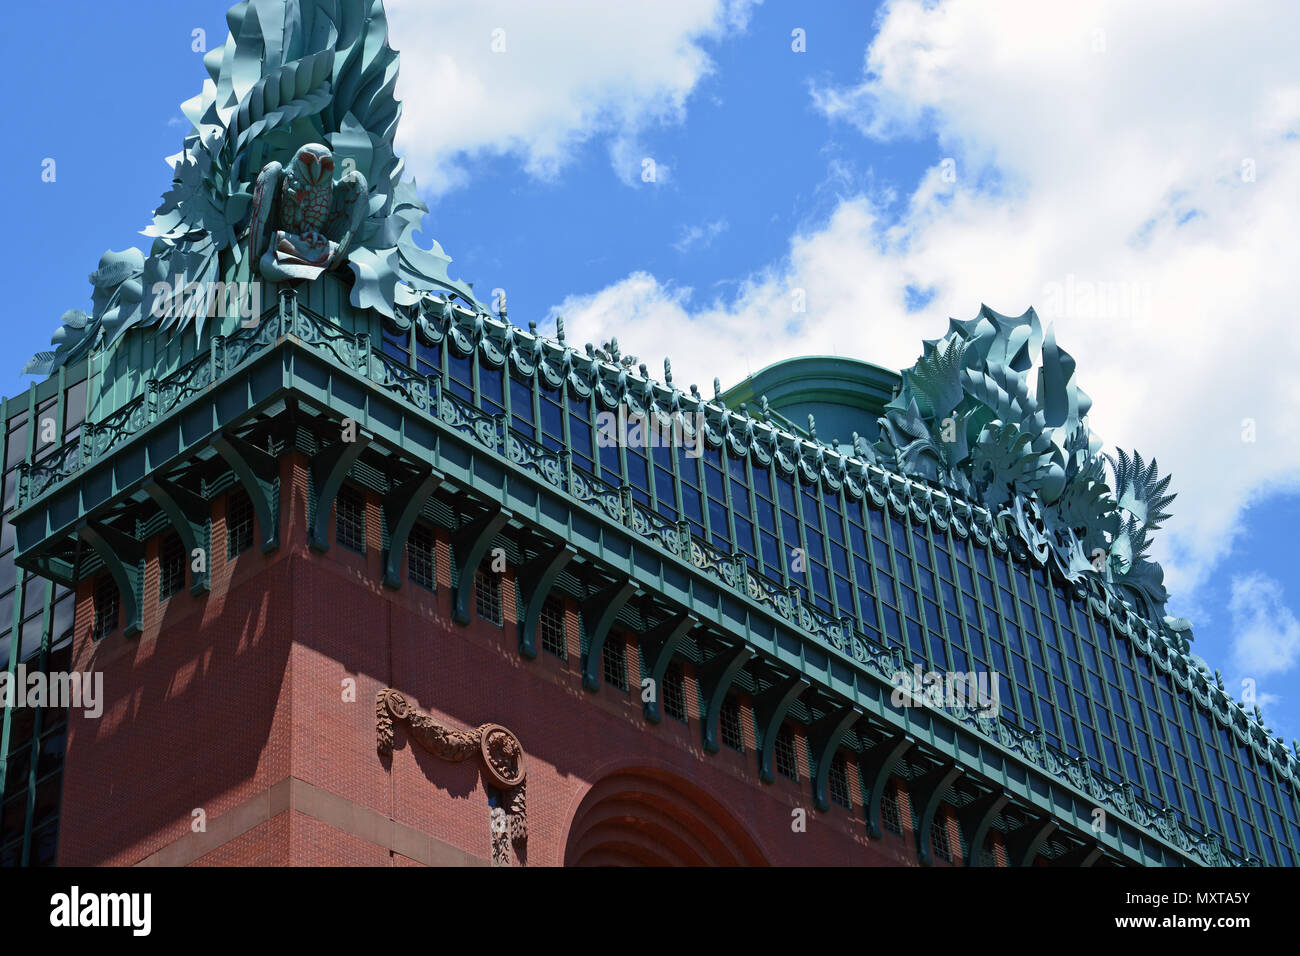 Architectural detail of giant owls on the roof of the Harold Washington Public Library in Chicago's South Loop. - Stock Image